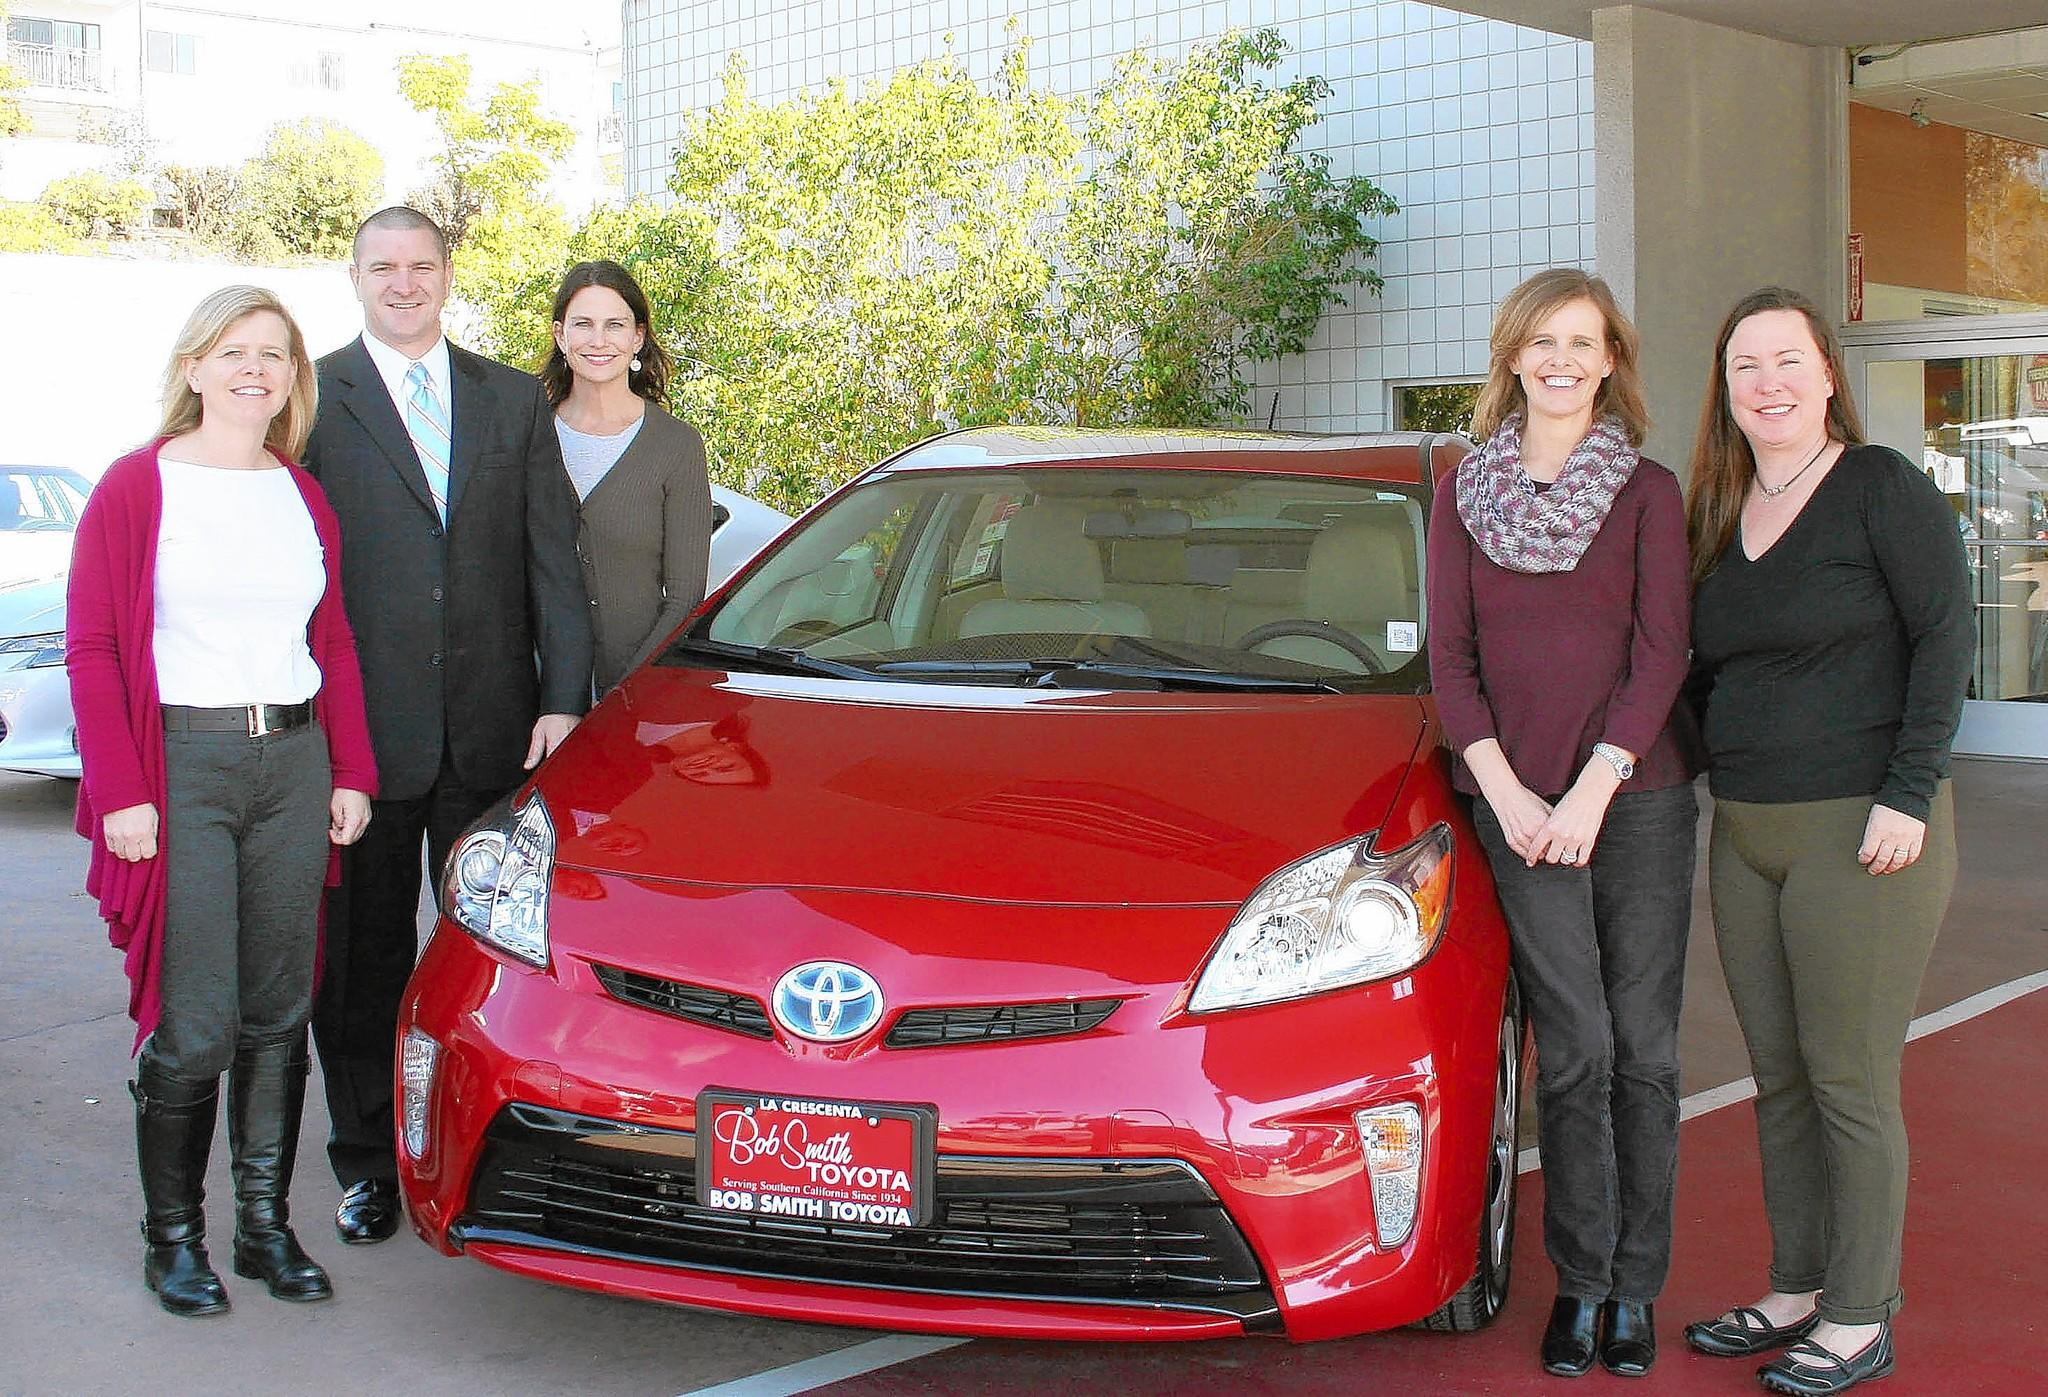 Raffle tickets for a Toyota Prius C are on sale now through the La Cañada Flintridge Educational Foundation and the lucky winner will be announced March 15 at the organization's annual Spring Gala. Shown with a Prius are gala co-chair Stephanie Fossan, from left, Bob Smith Toyota's Pete Smith, Deborah Weirick, executive director of the foundation; gala co-chair Kirsten Newquist and gala raffle chair Shannon Griffin.